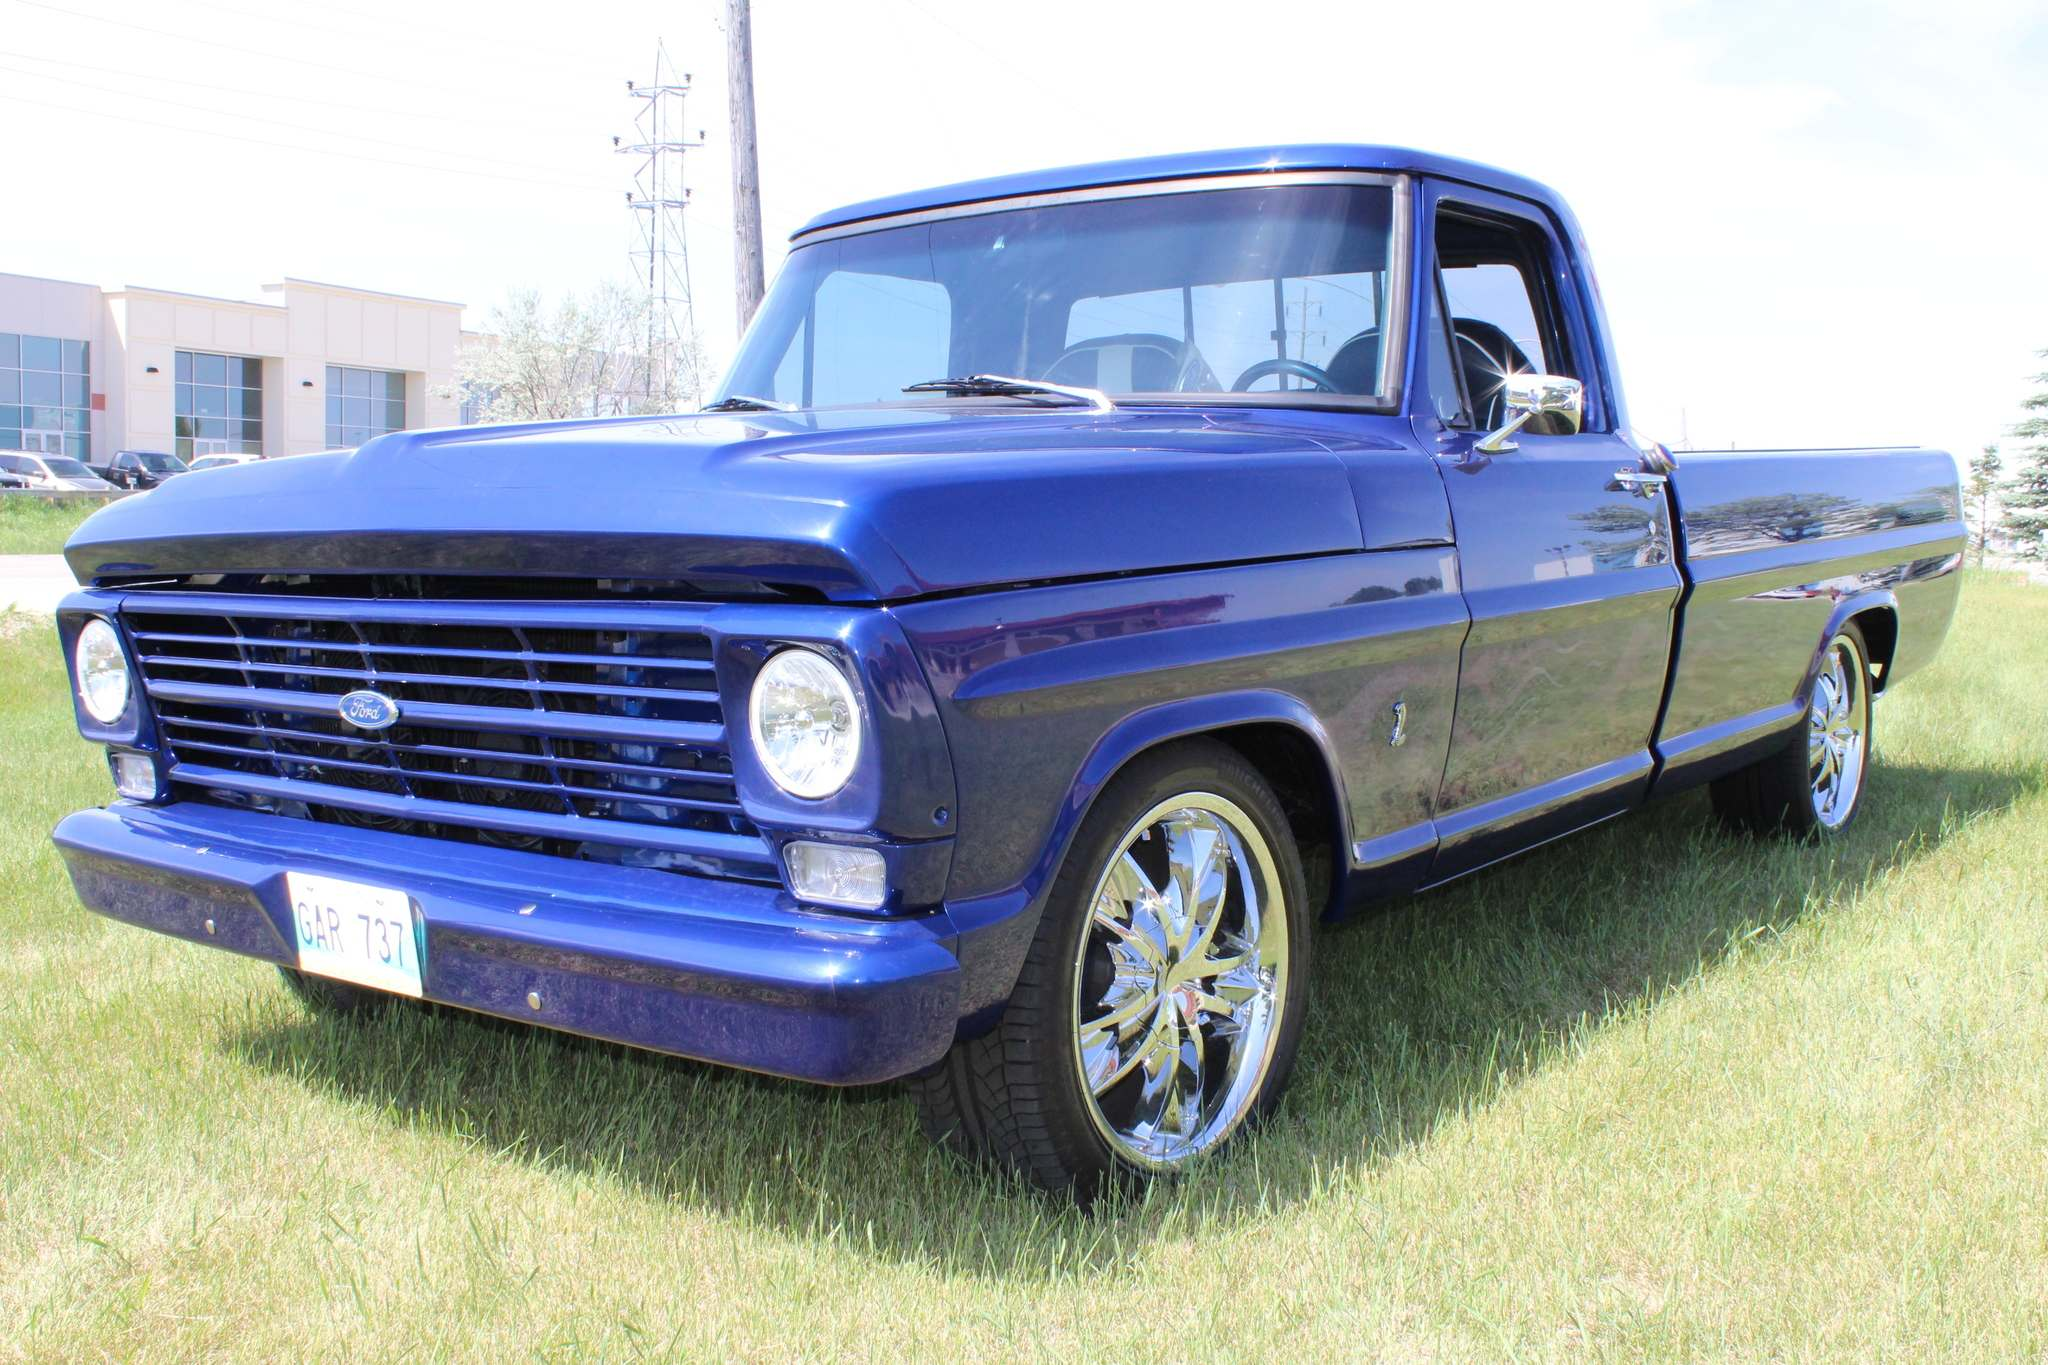 Larry D'Argis / WINNIPEG FREE PRESSPurchased new in 1967, this Ford F100 was a one-family owned truck that was passed down to the owner's grandson. It was purchased by Winnipeg's Khartum Shriners as a prize for their annual fundraising draw.